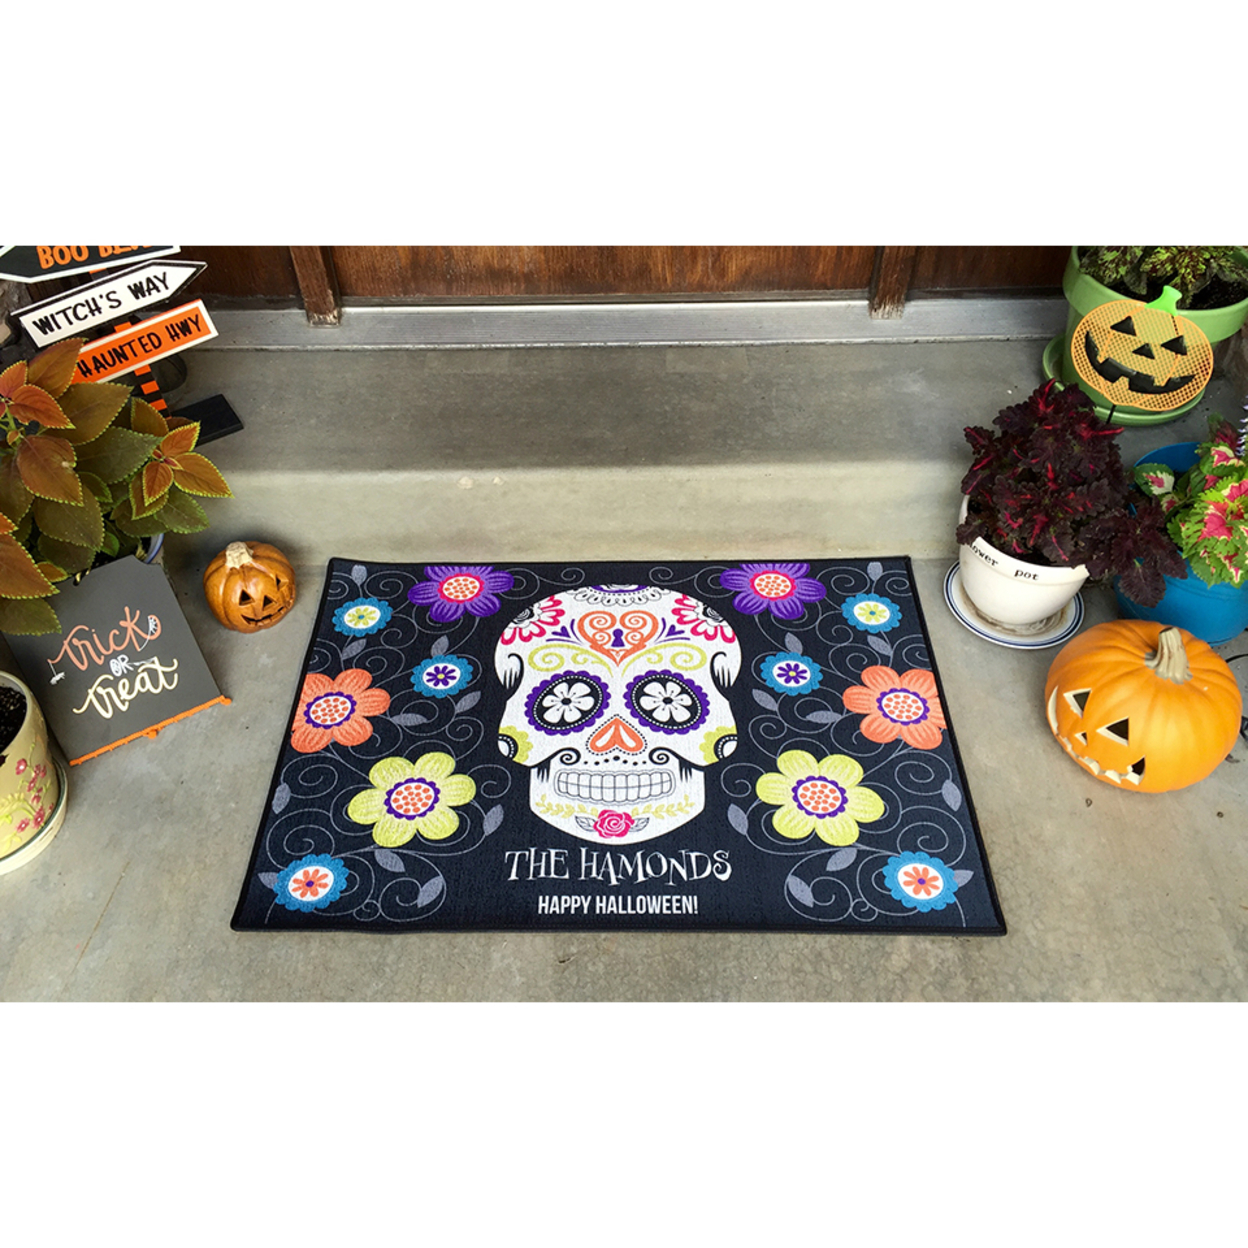 Personalized Large Halloween Door Mats - Blacks 57ed95b4a020af12e866682a